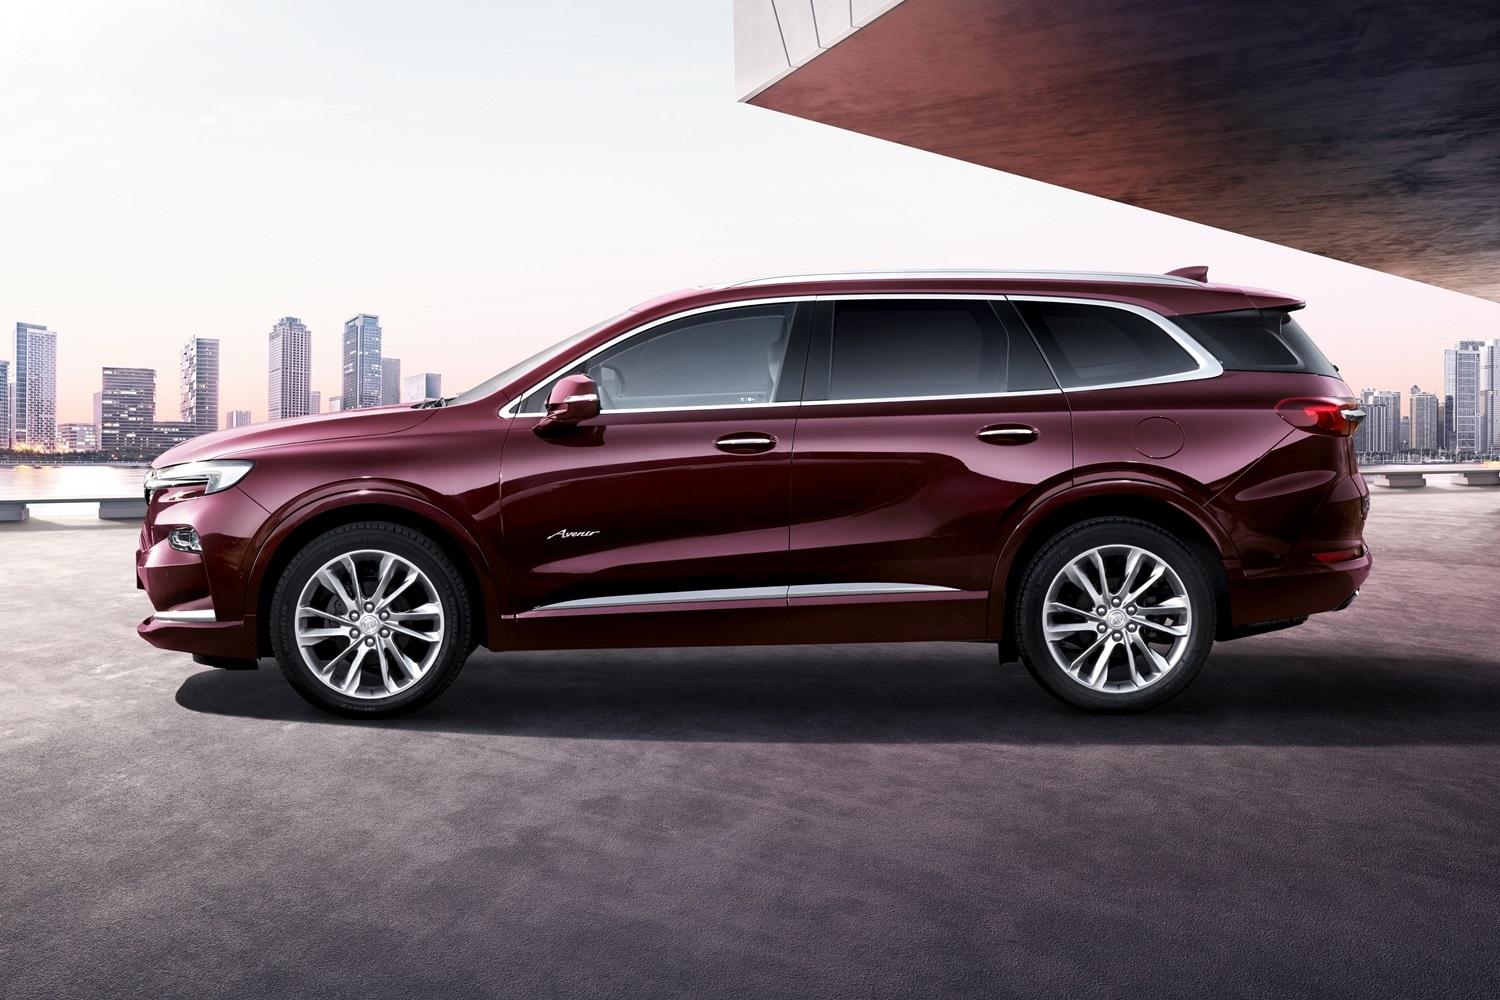 Gm Shows All-New China-Spec Buick Enclave Avenir | Gm Authority Does The 2022 Buick Enclave Avenir Have Heads Up Display